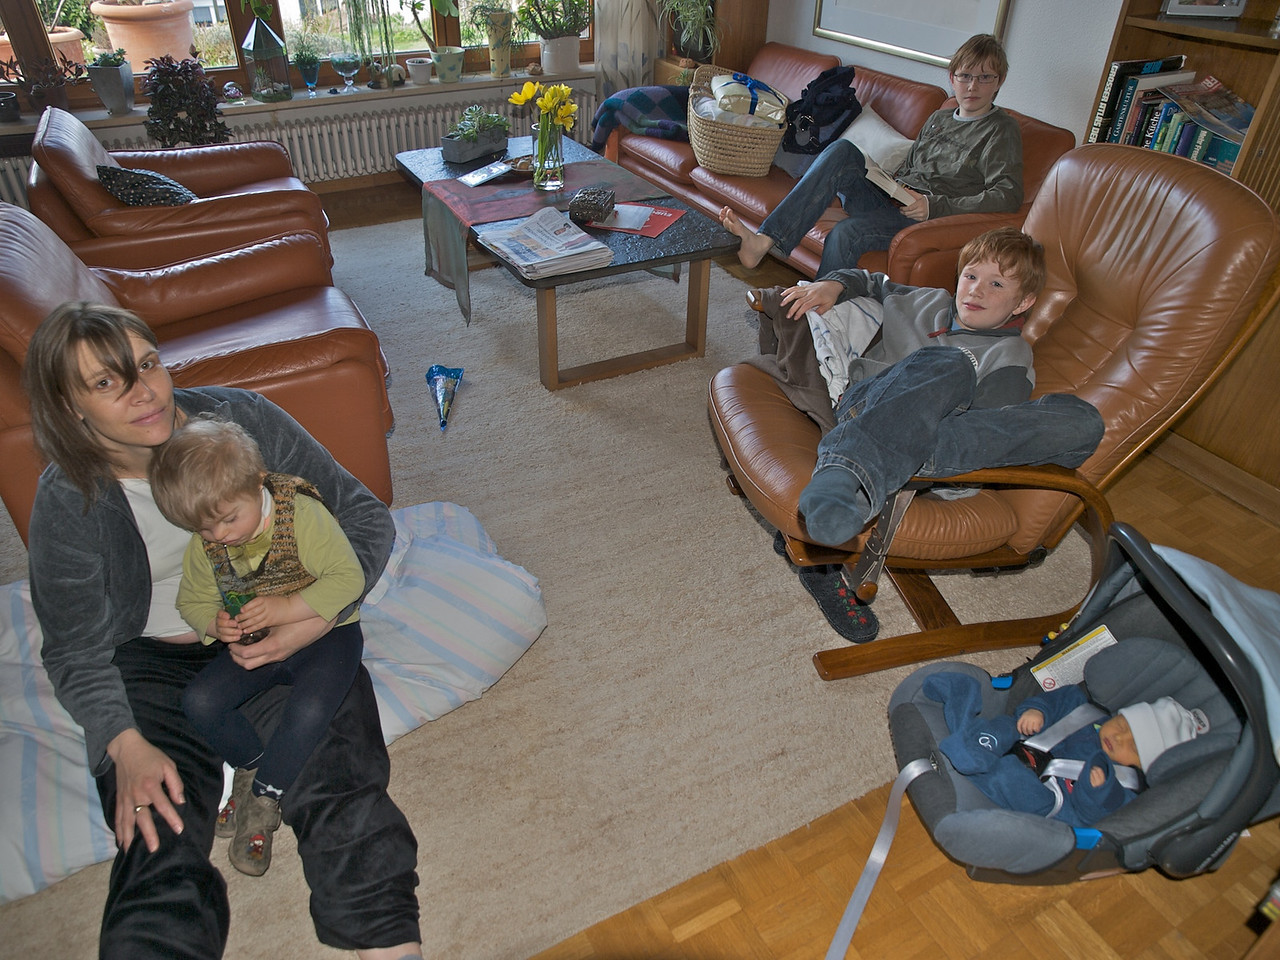 Sunday 13th April 2008 - Almost the full set, just need my eldest son Michael to complete the picture.<br /> <br /> Luc and Kerstin are doing fine, kerstin is happy to be home and Luc seems to have settled in quickly, cai however like the other boys seem a little bit jealous - I am sure it will wear off soon.